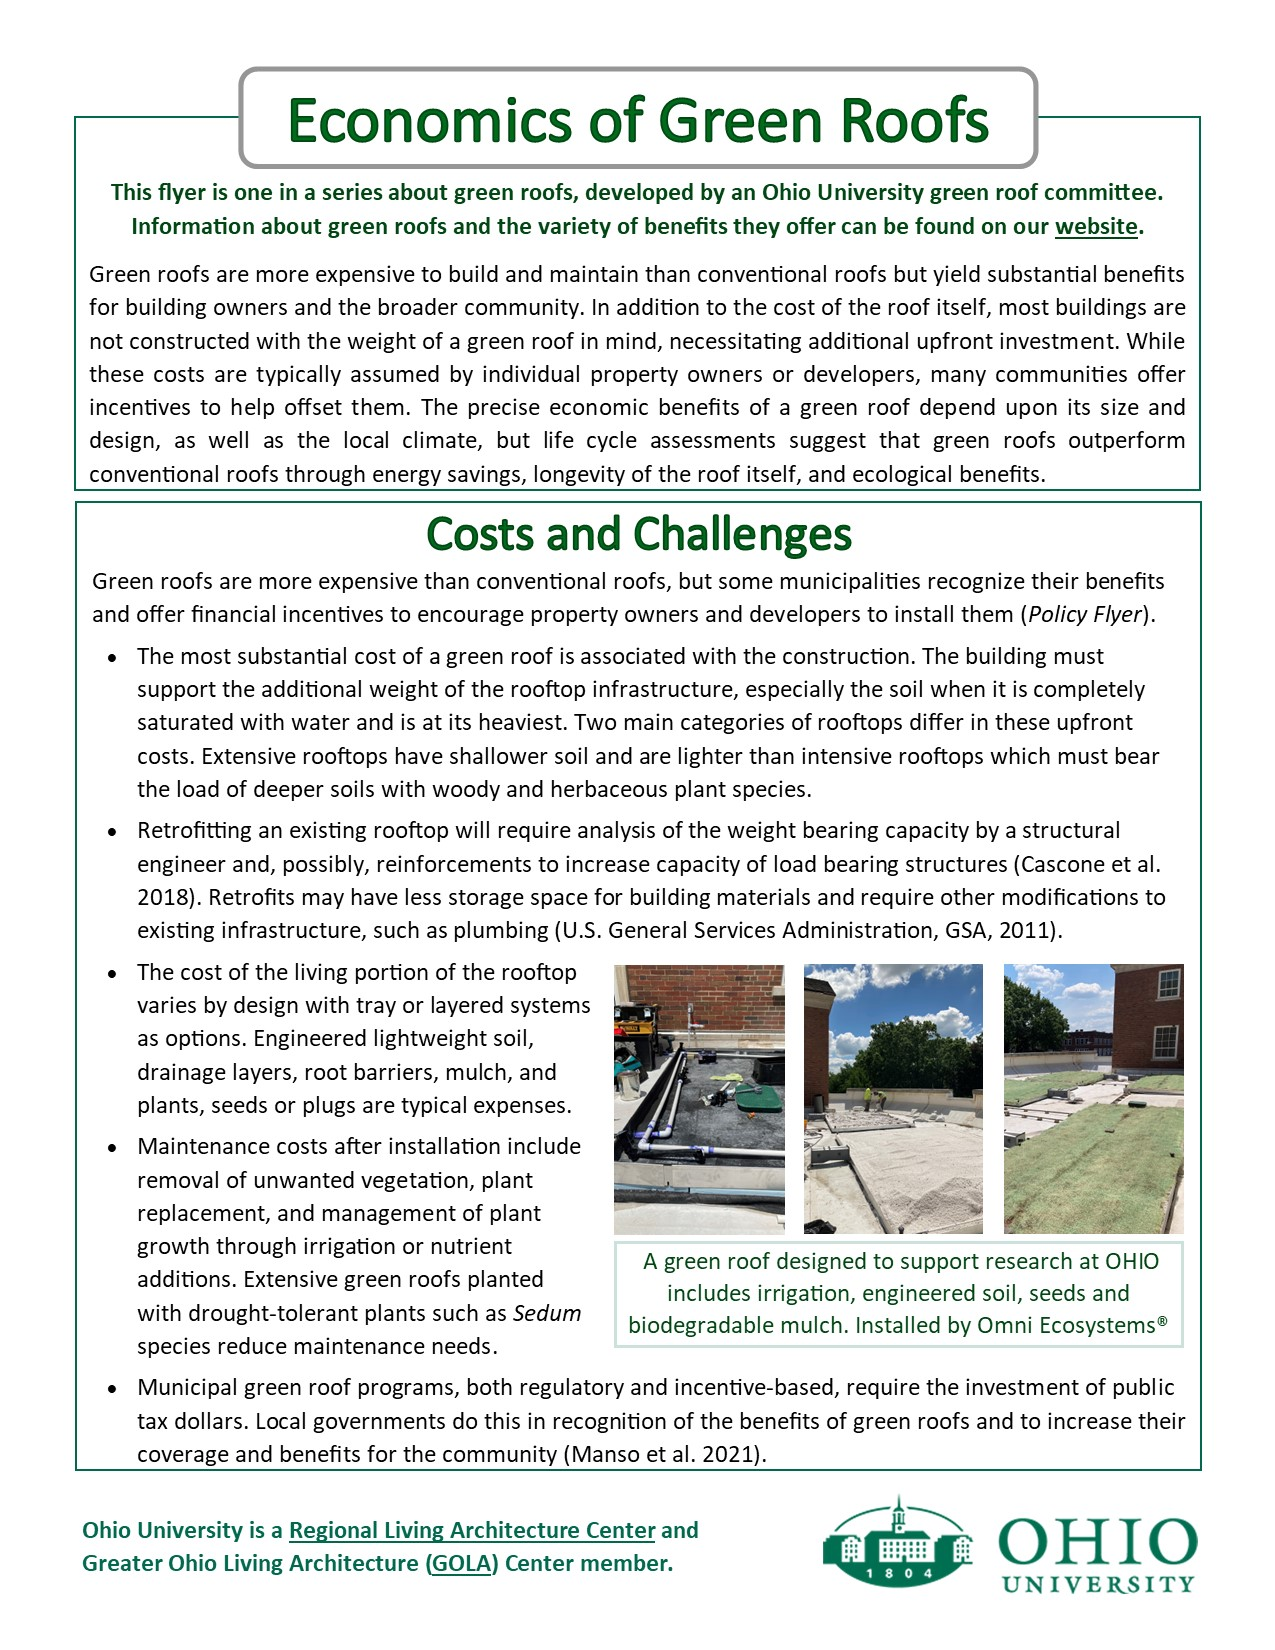 An informational flyer on green roof economic issues page 1